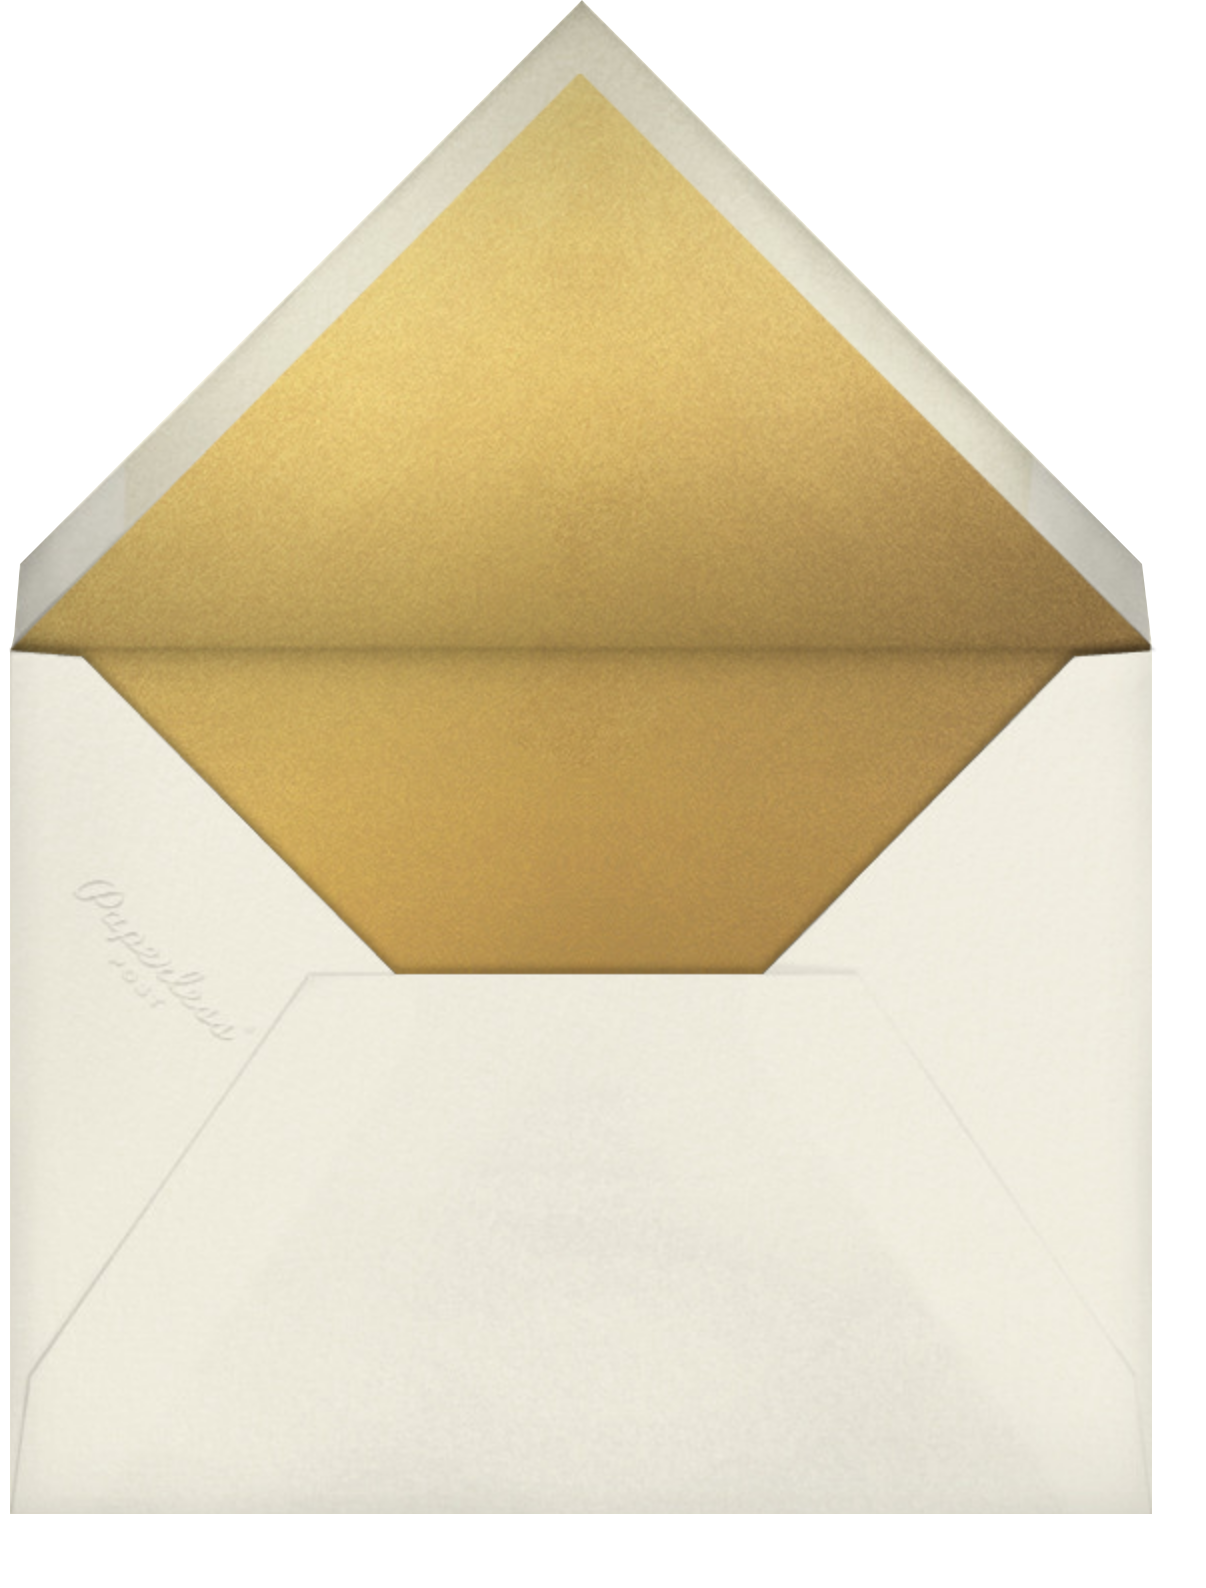 Snow-capped - Paperless Post - Holiday cards - envelope back